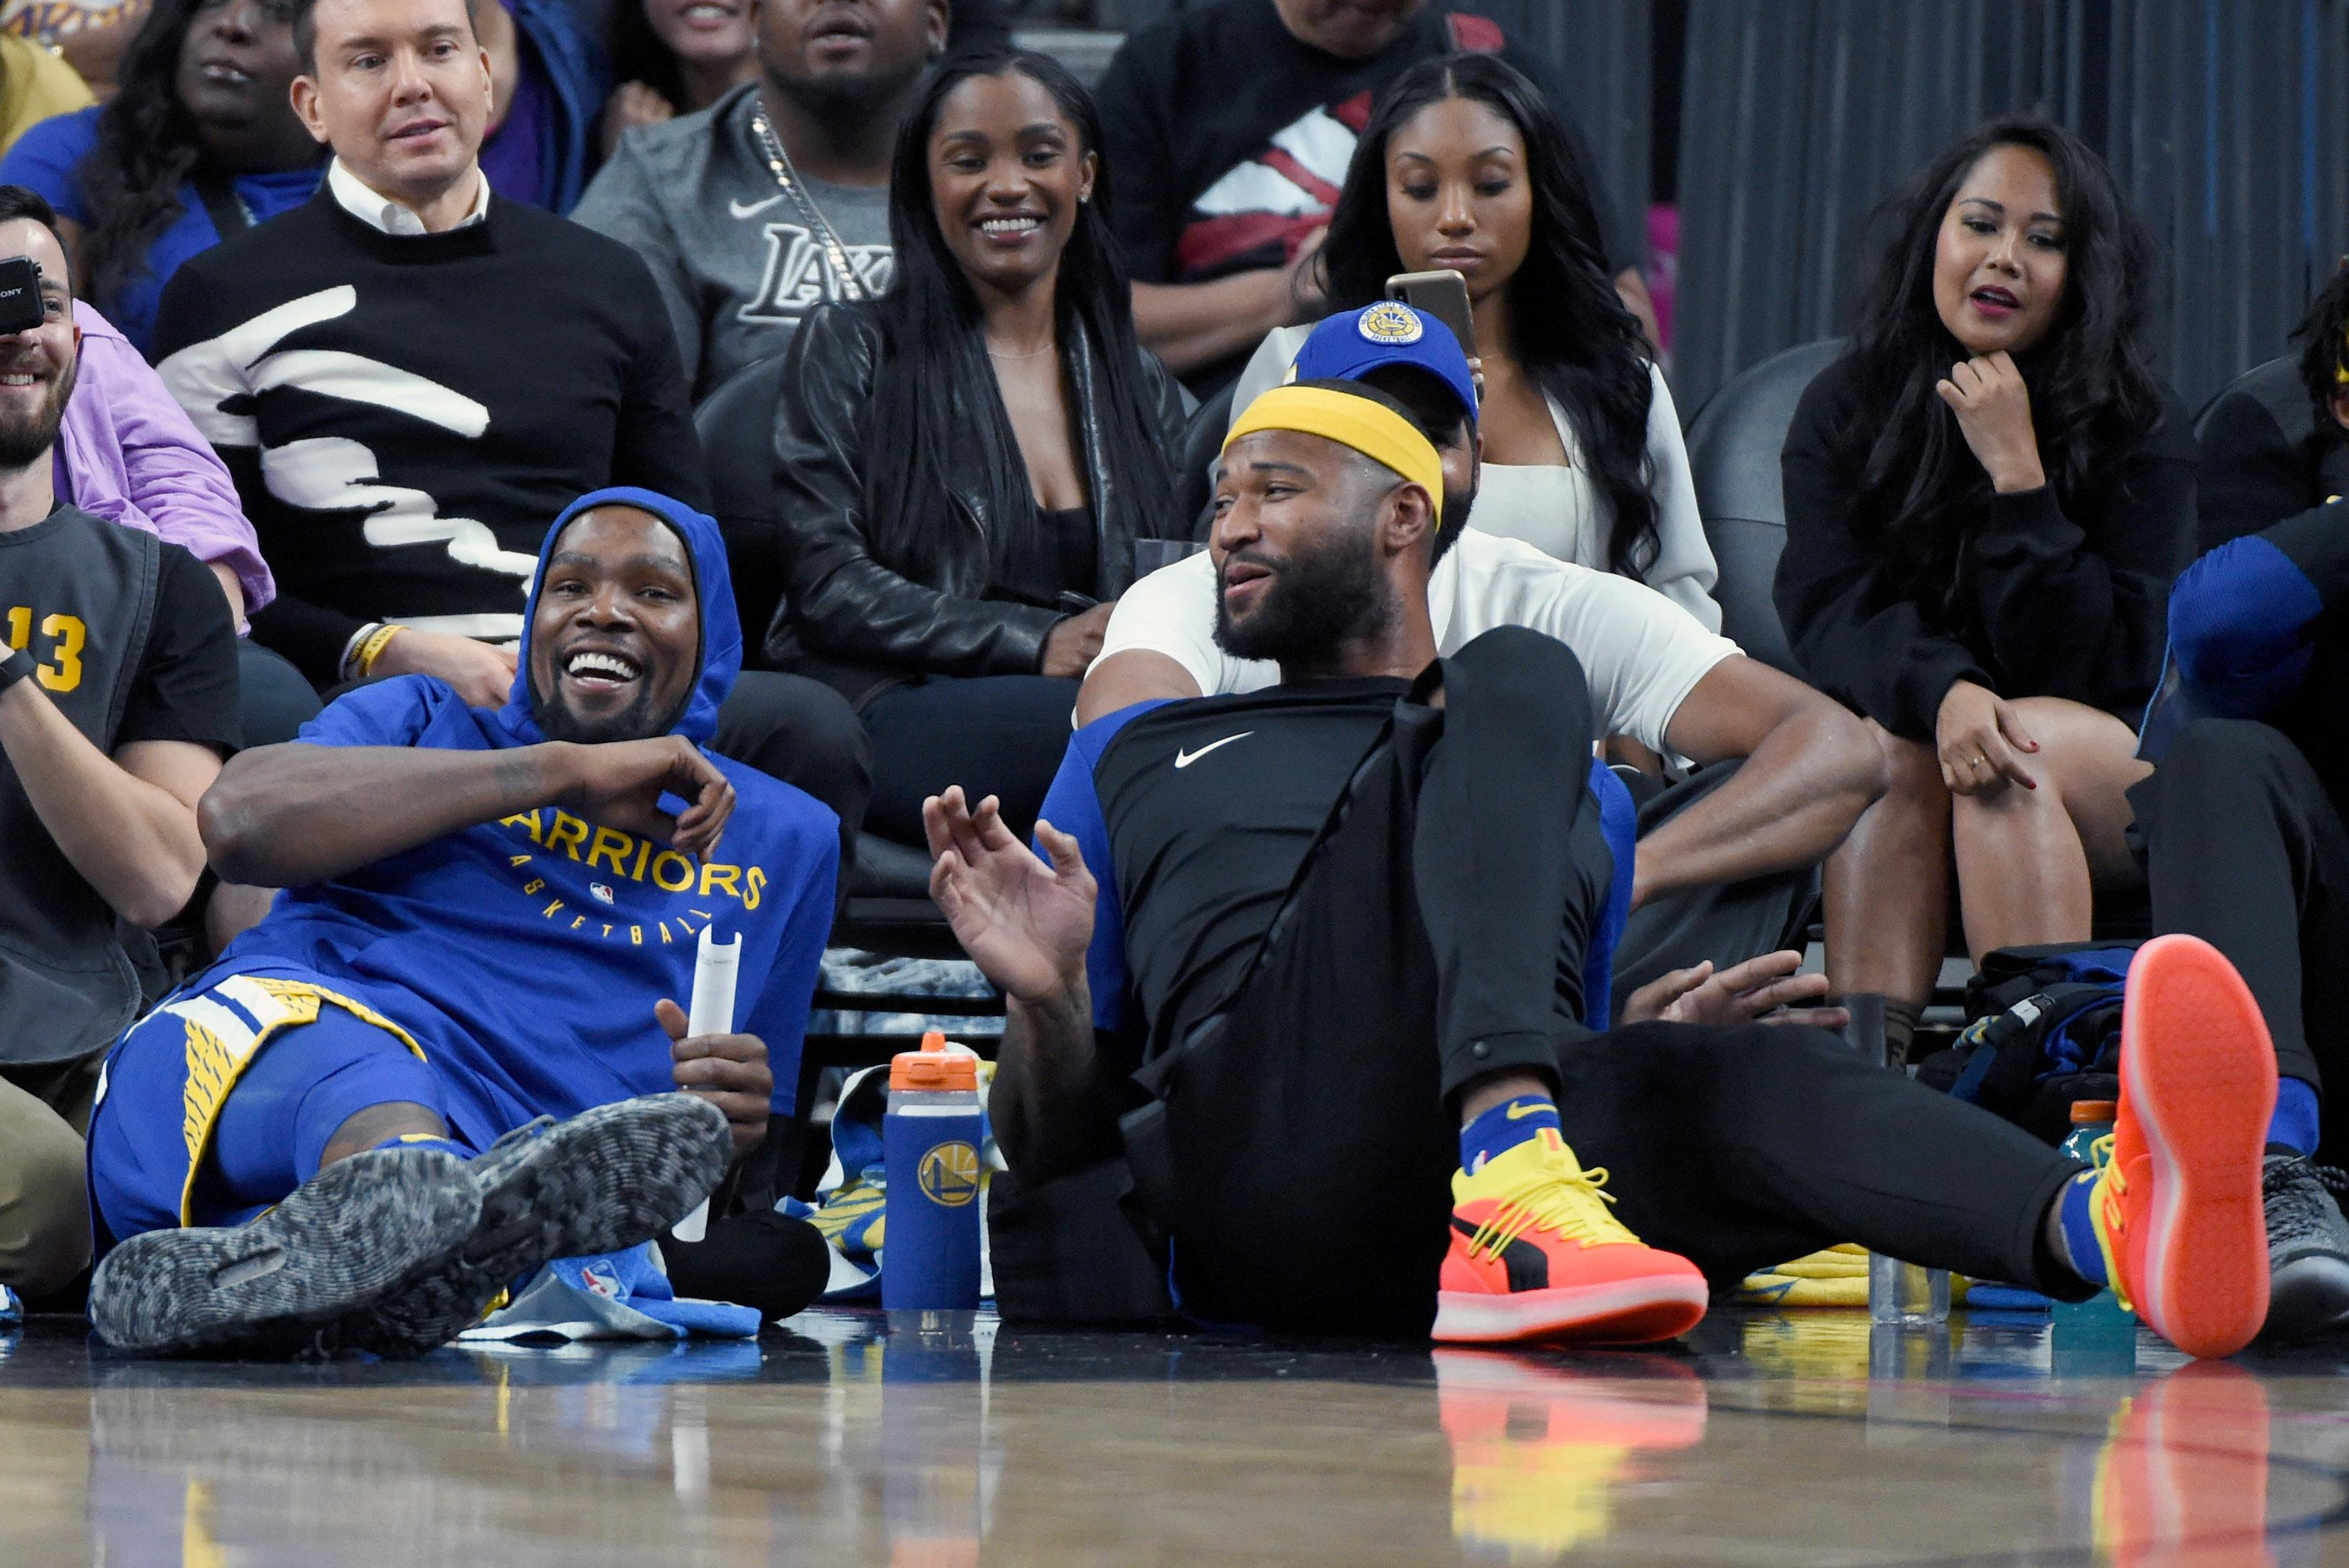 Warriors center could be back after Christmas, report says